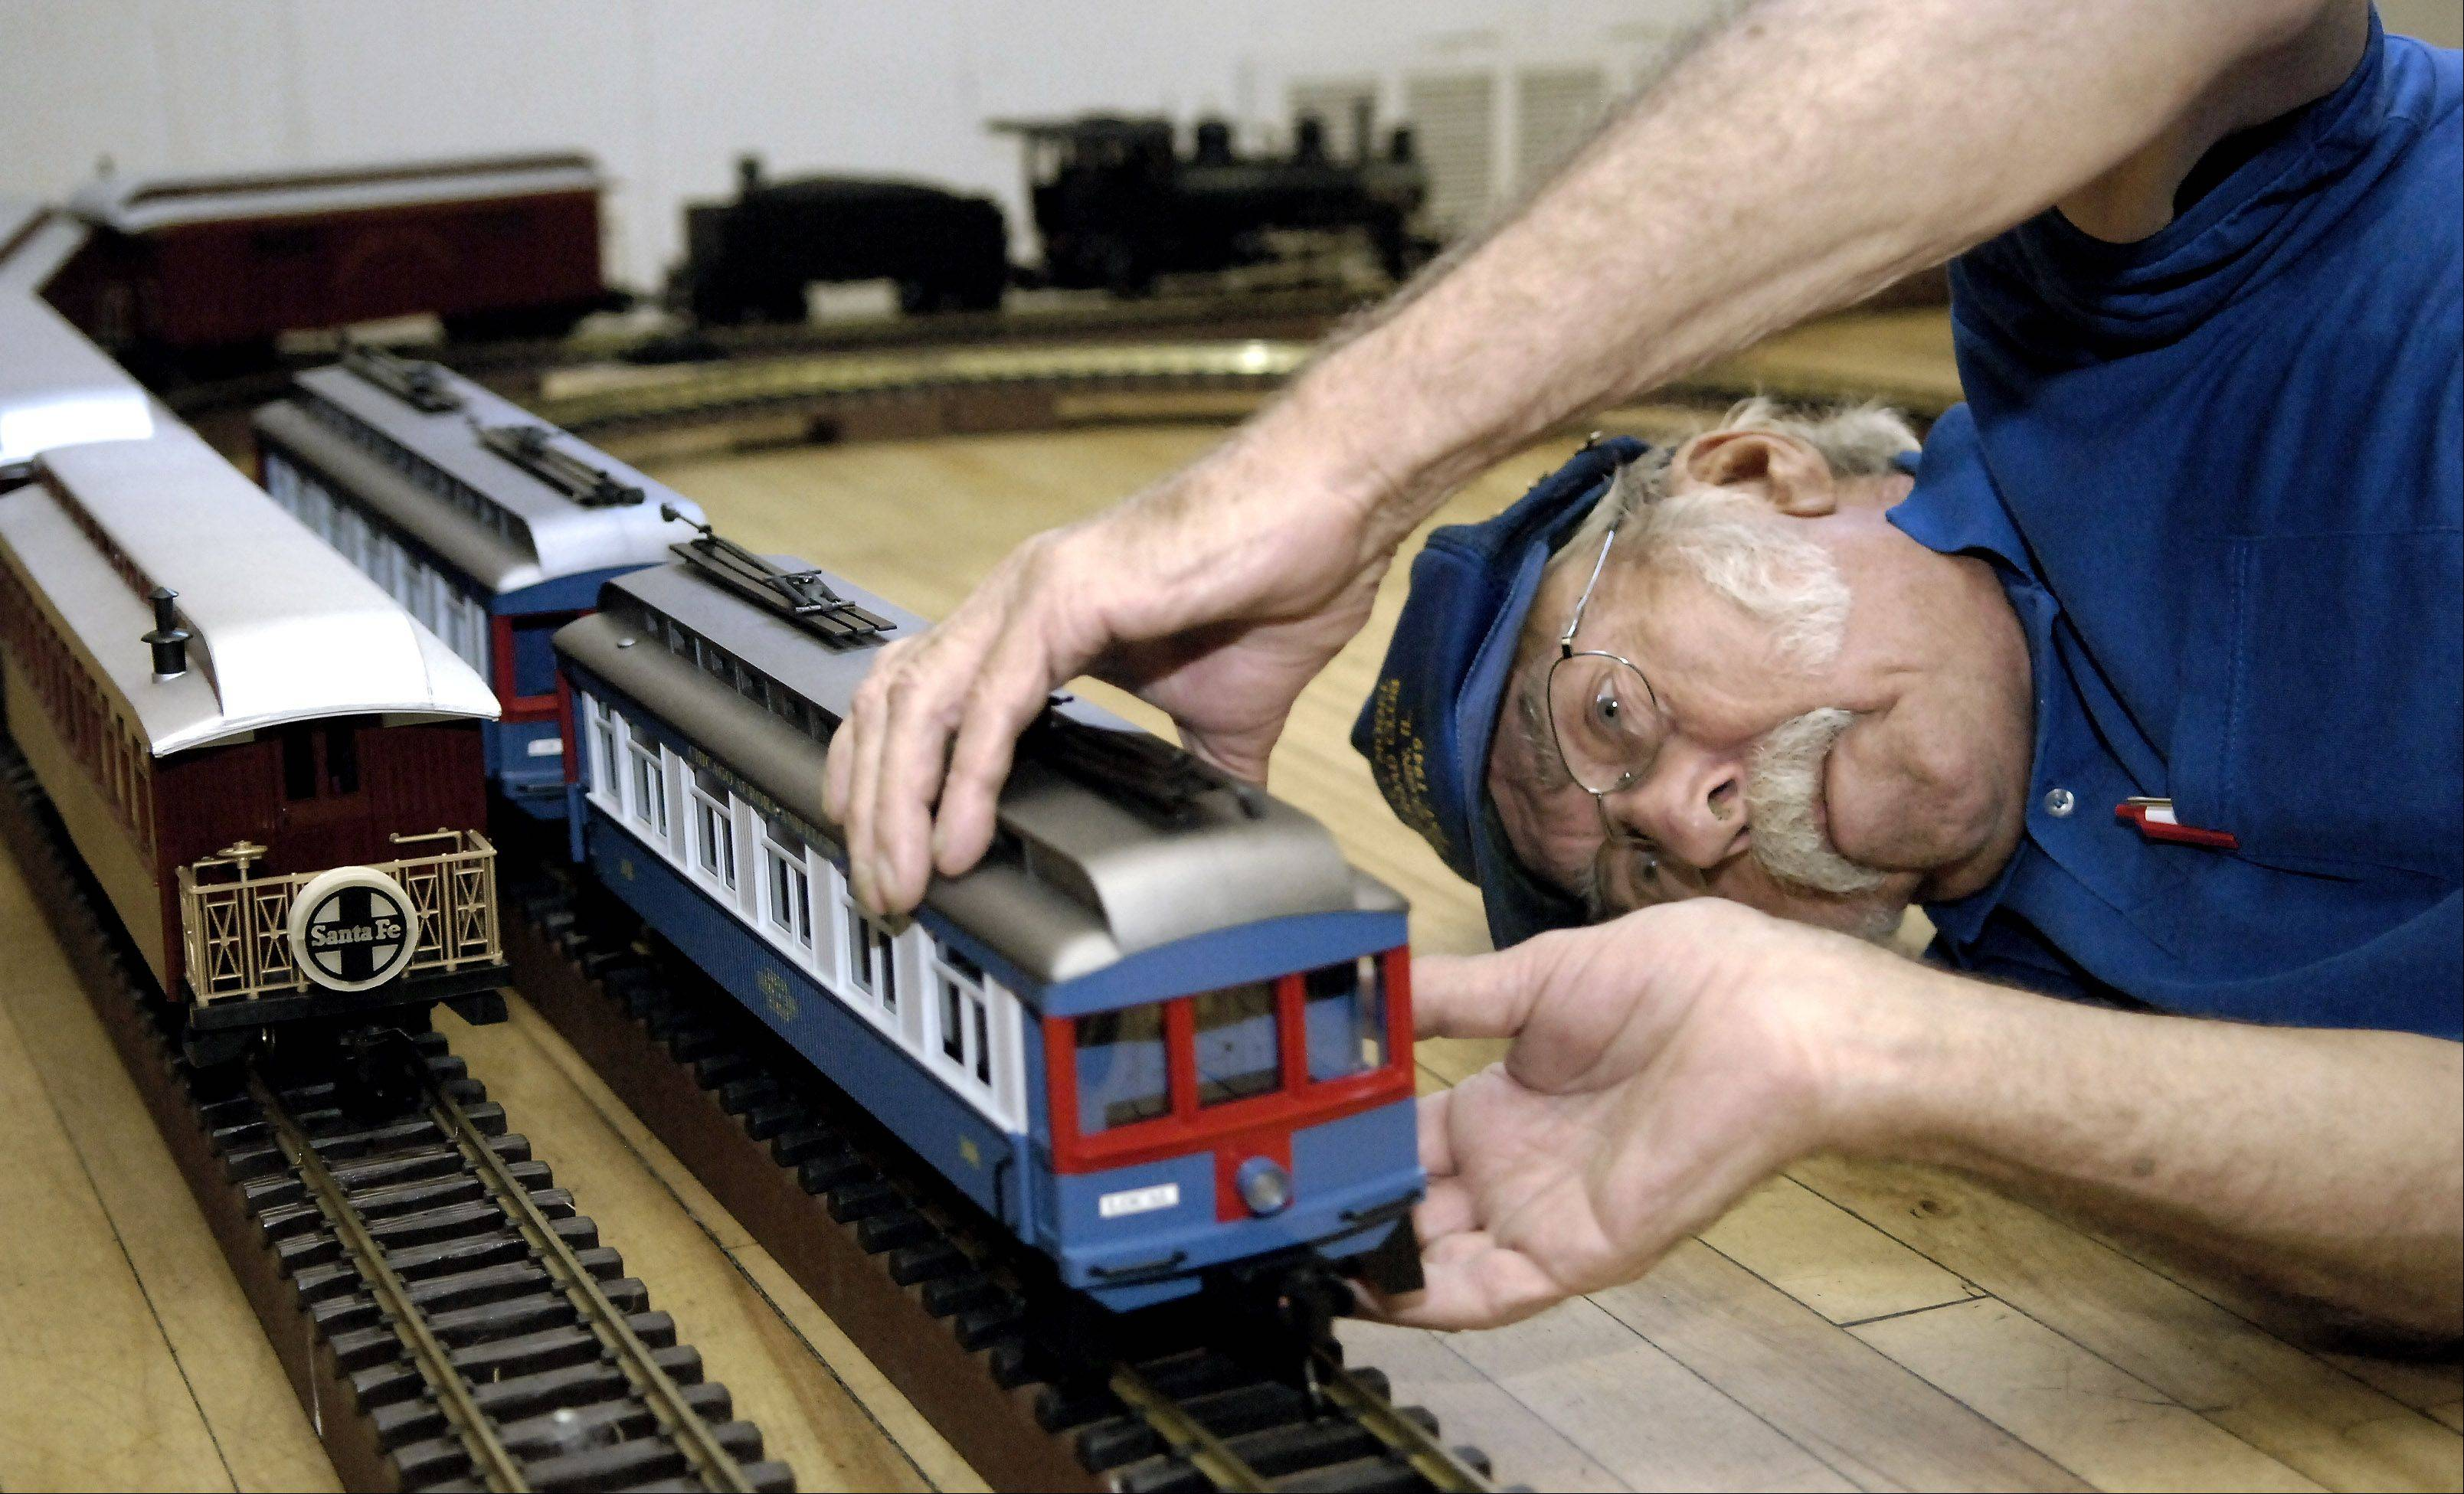 Wally Schalk of Elmhurst and a member of the Valley Model Railroad Club of South Elgin puts replica cars from the Chicago, Aurora & Elgin Railway on a track inside the St. Charles VFW Hall on Third St., for the 2007 Scarecrow Festival. Schalk and fellow club members brought several train cars from their personal collections for the display.